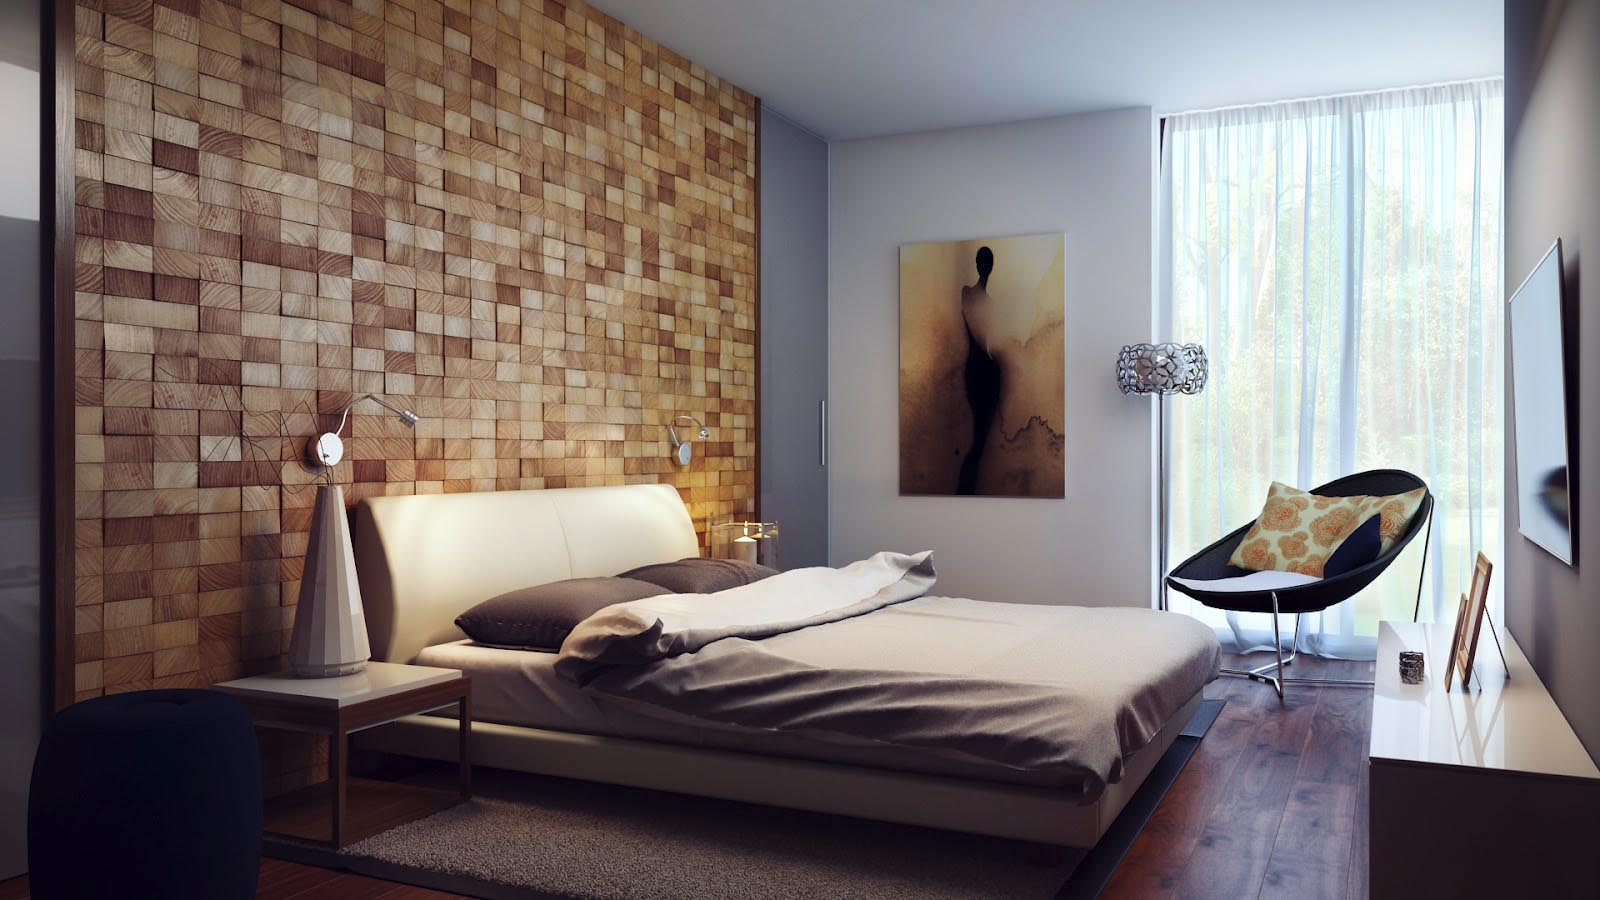 Feature Walls On Bedroom With Interesting Bedroom Wall Feature Design 1600x900